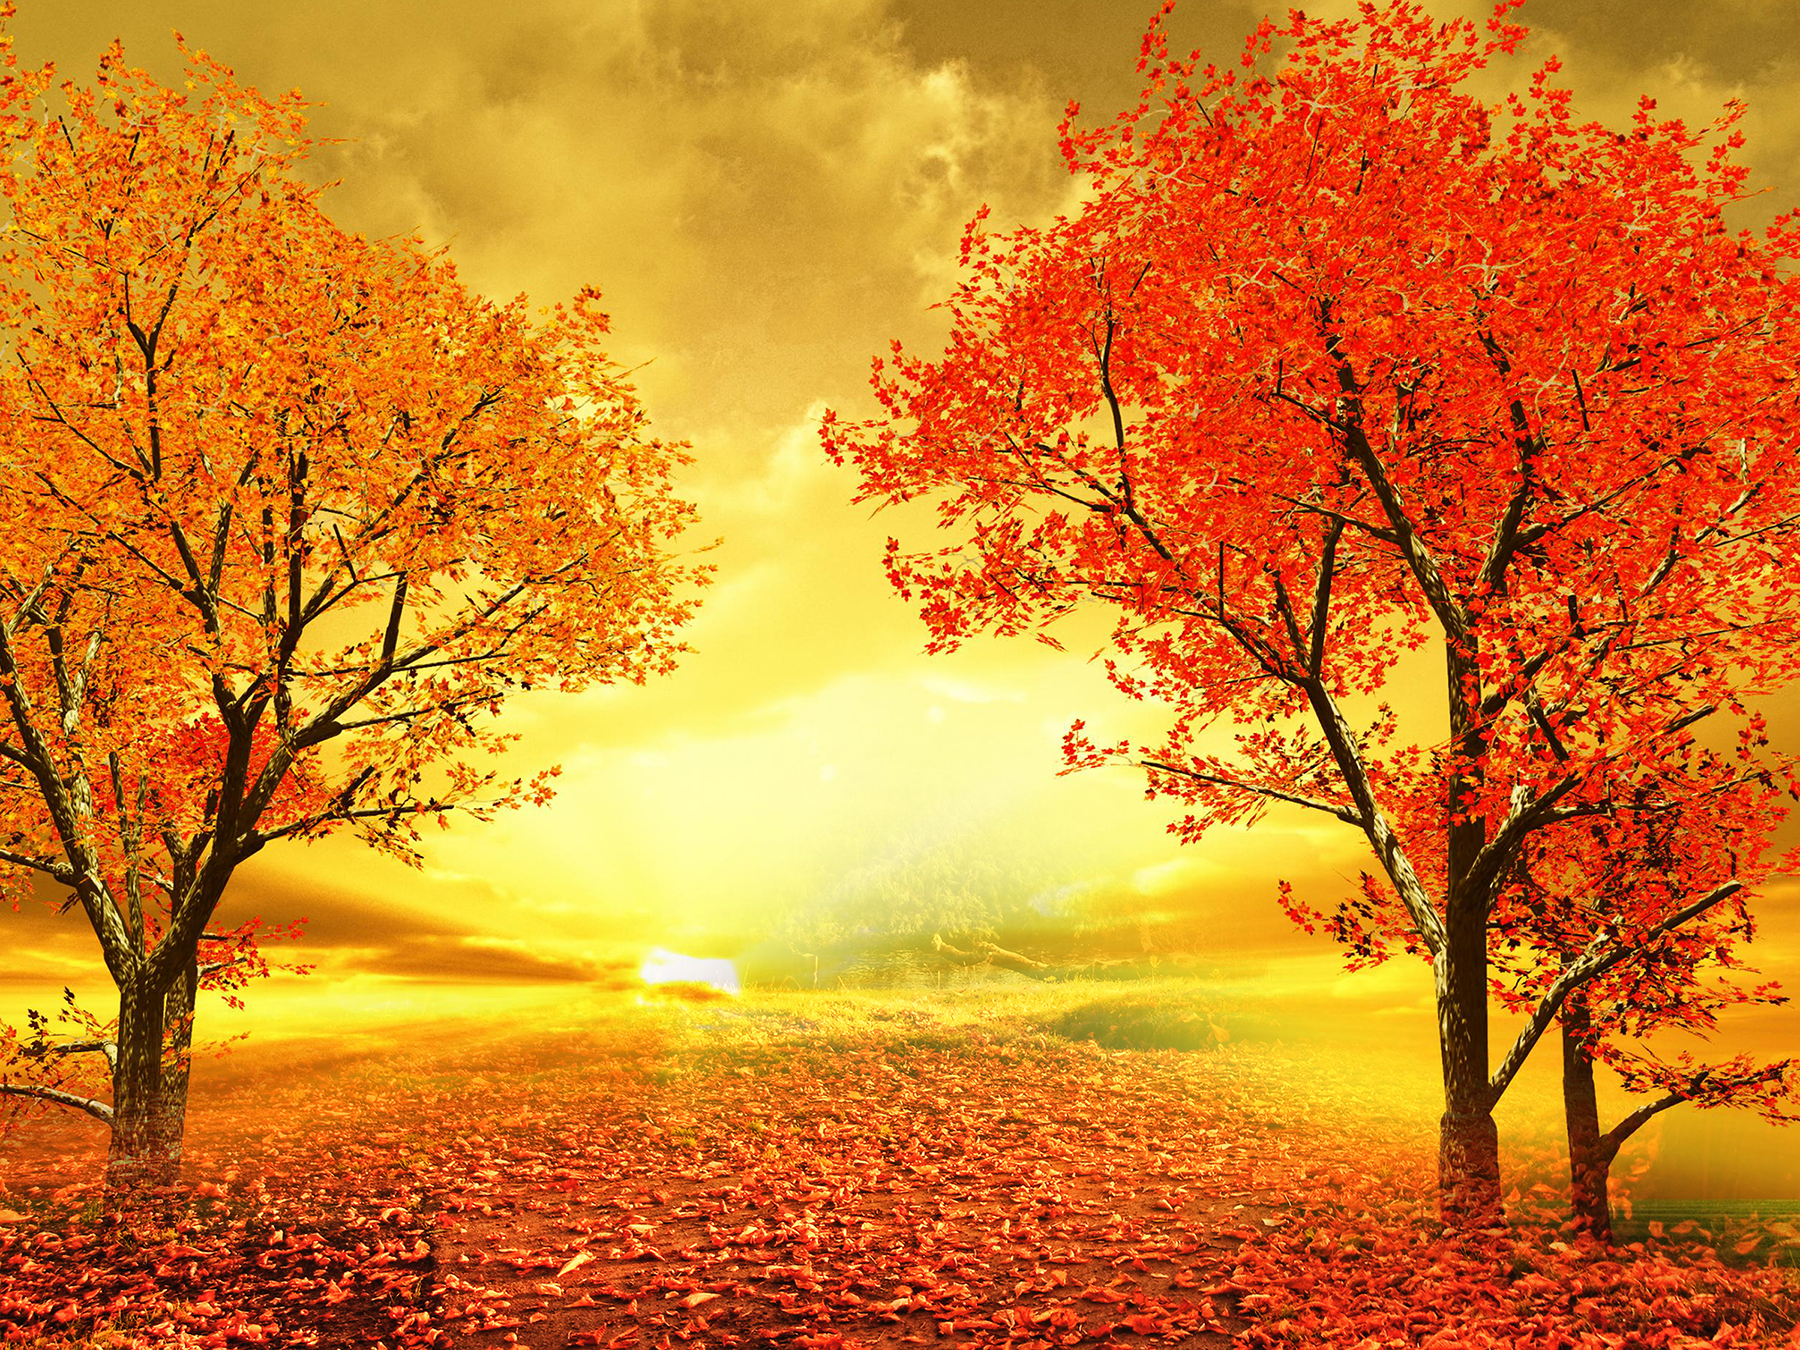 Autumn Sunsets Png Backgrounds - Autumn Sunset Road Wallpaper and Background Image | 1800x1350 | ID ...